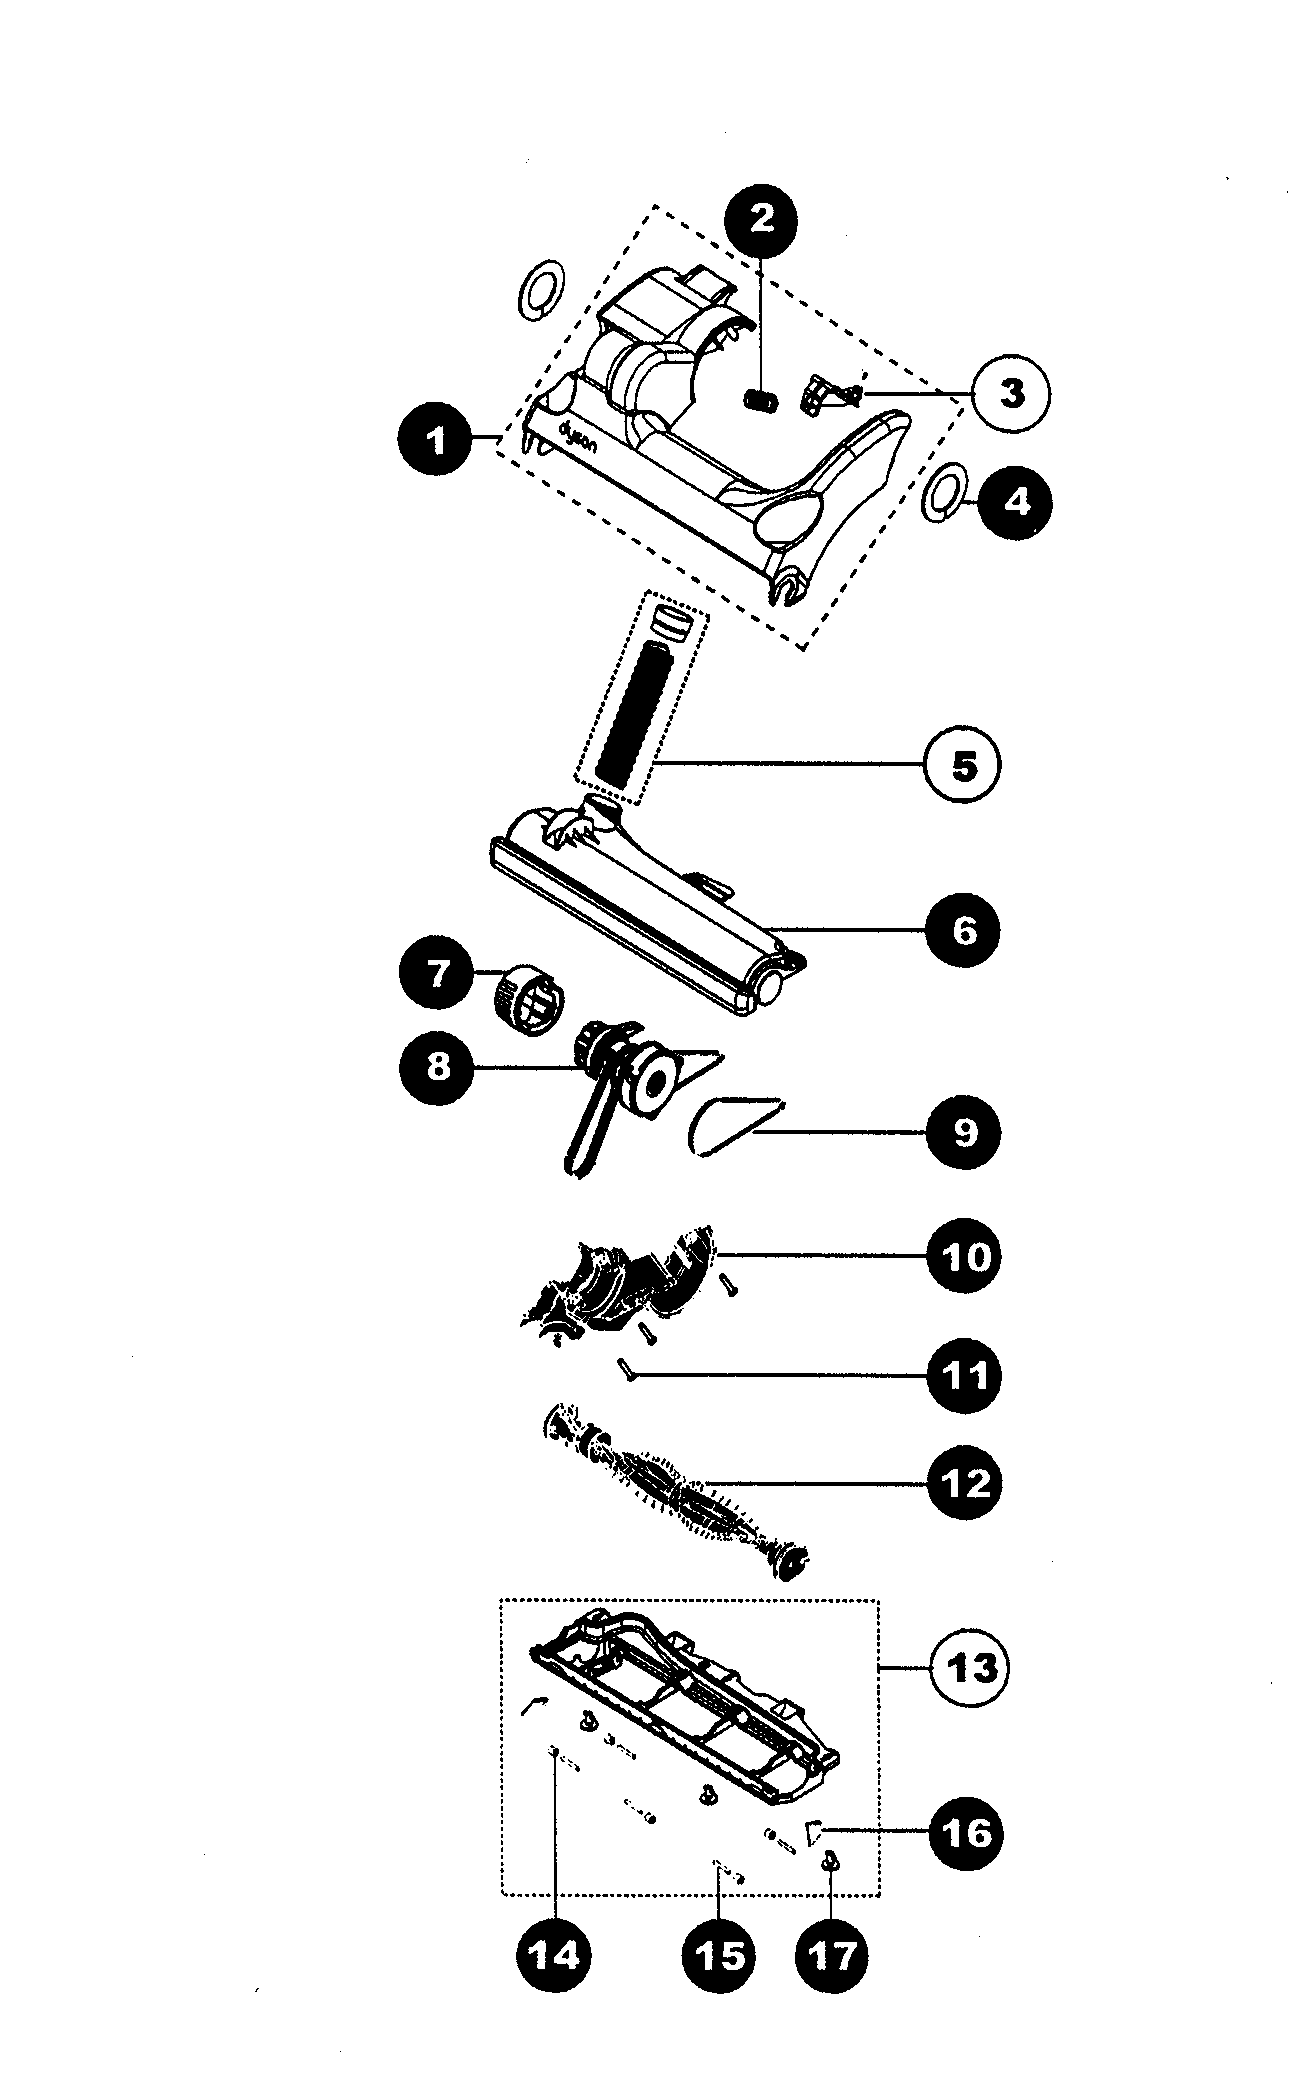 Dyson model DC07 vacuum, upright genuine parts